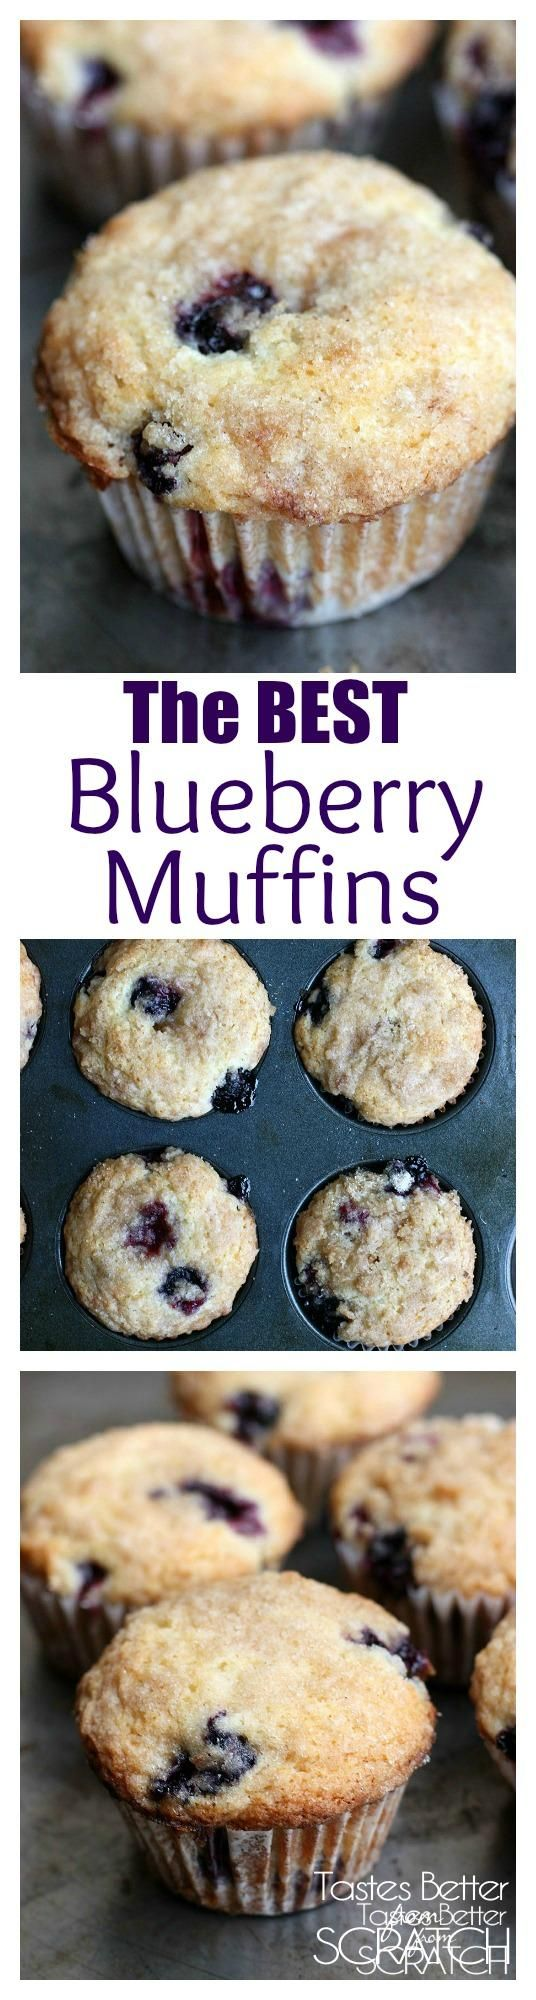 The BEST Blueberry Muffins recipe on TastesBetterFromScratch.com